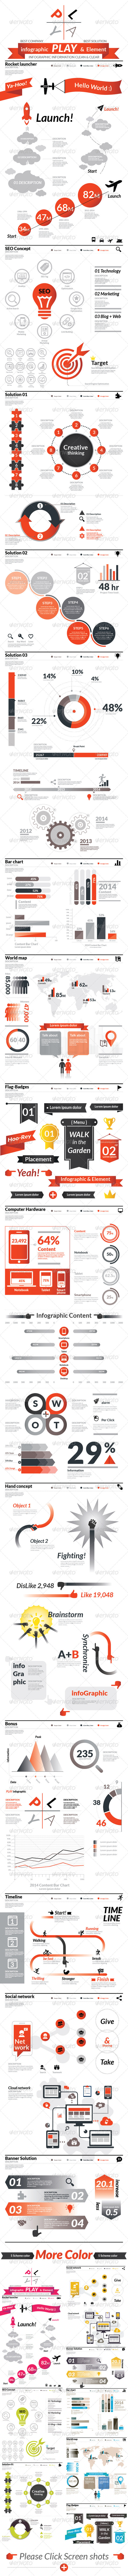 GraphicRiver Play Infographic 7675456